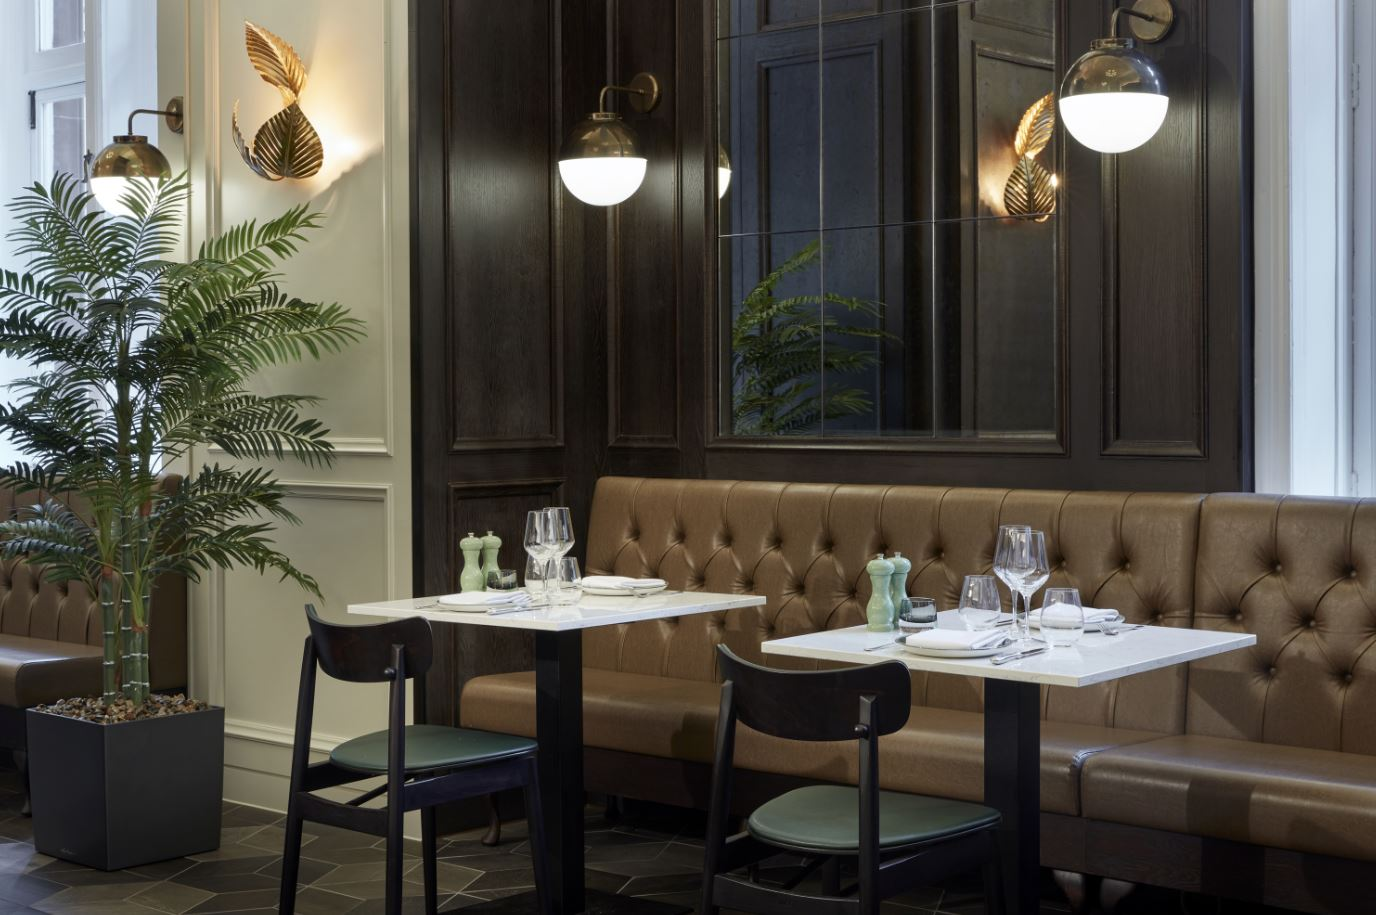 Lobster crumpets! VIVA checks in to the Midland Manchester